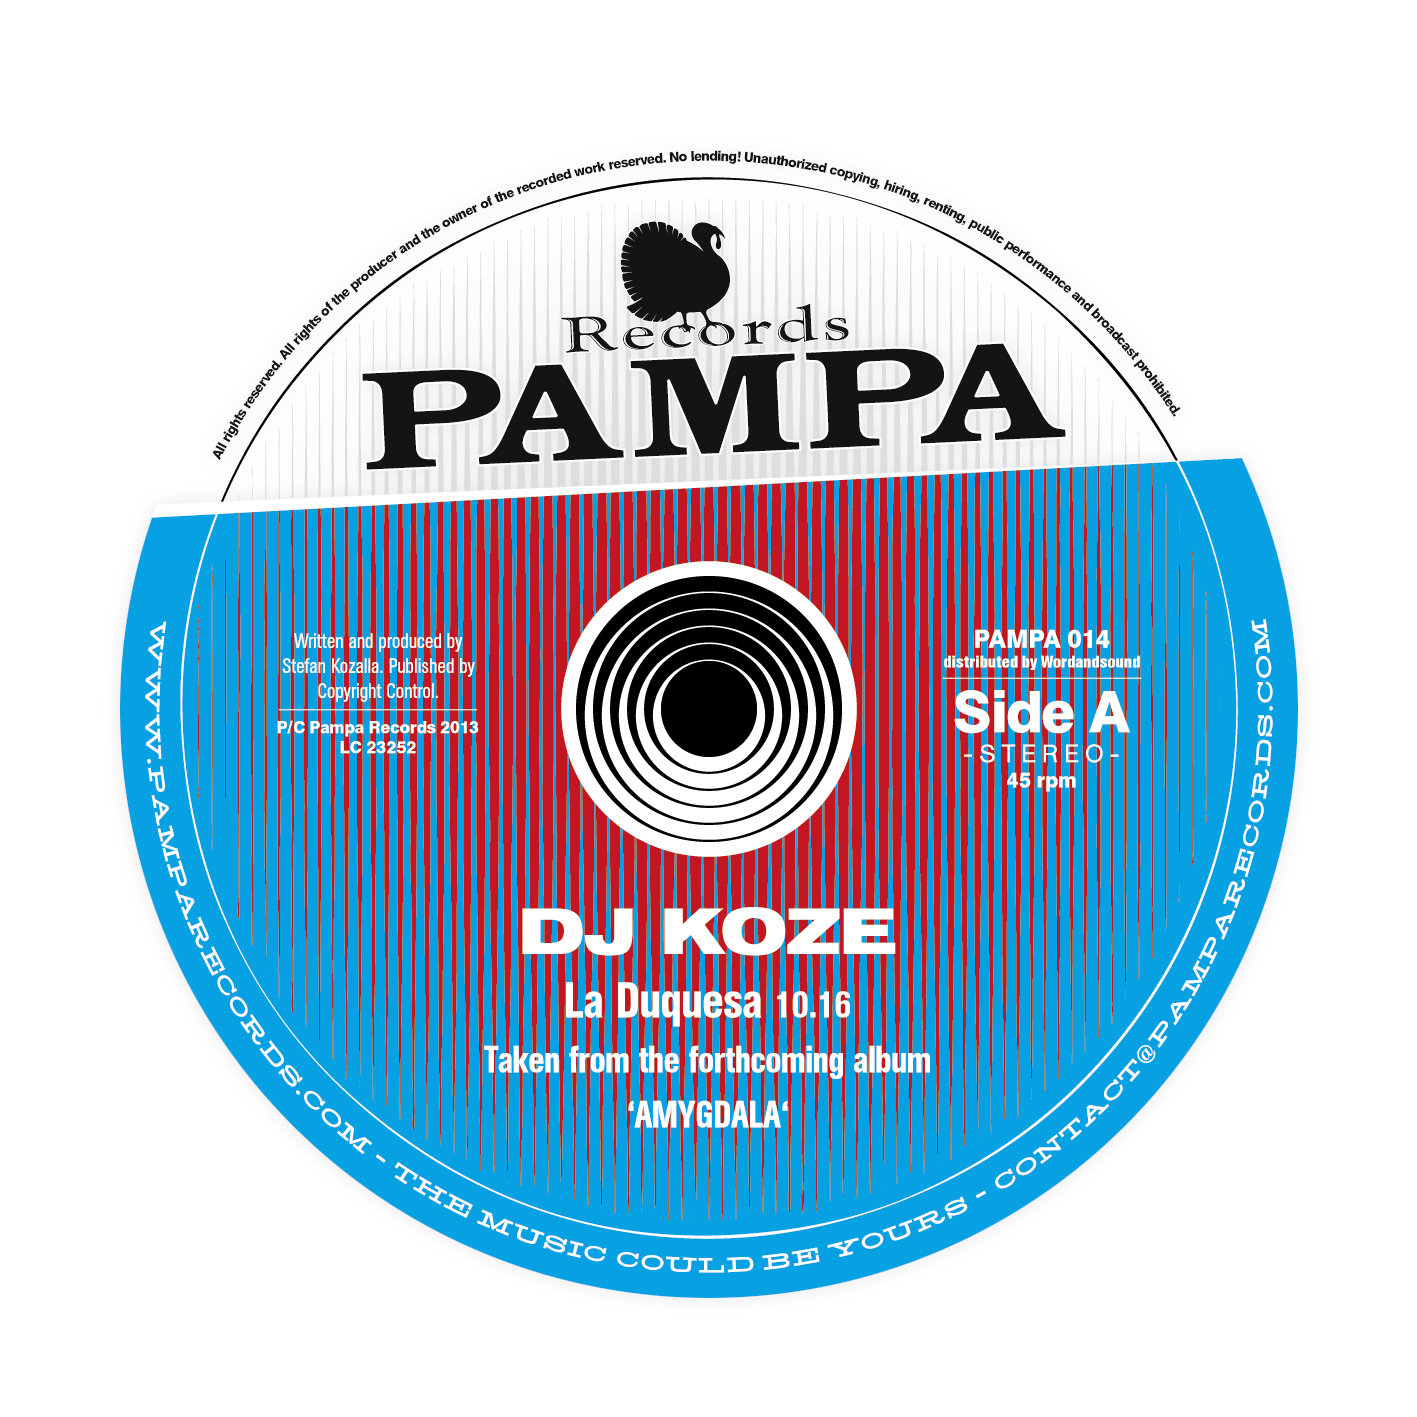 DJ Koze – La Duquesa (Pampa Records)